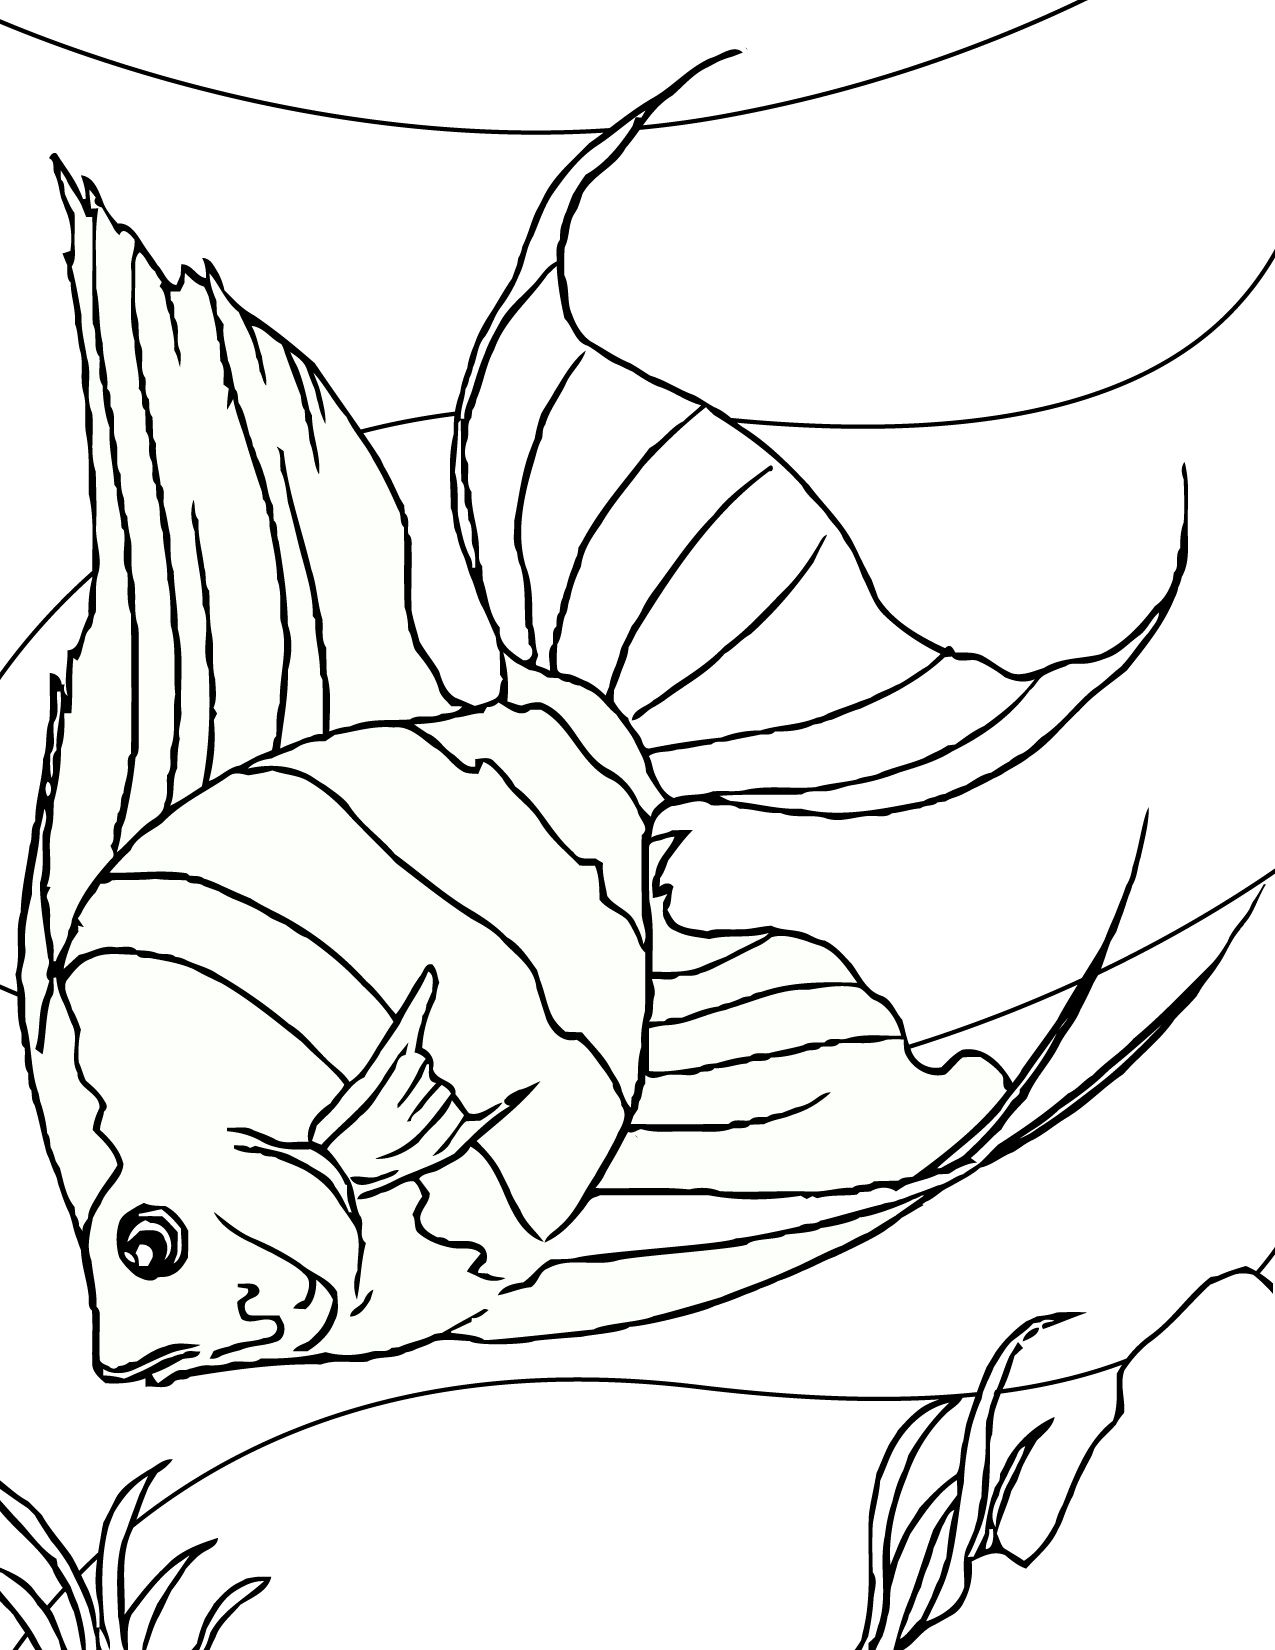 angel fish coloring page print out coloring pages - Printable Fish Coloring Pages